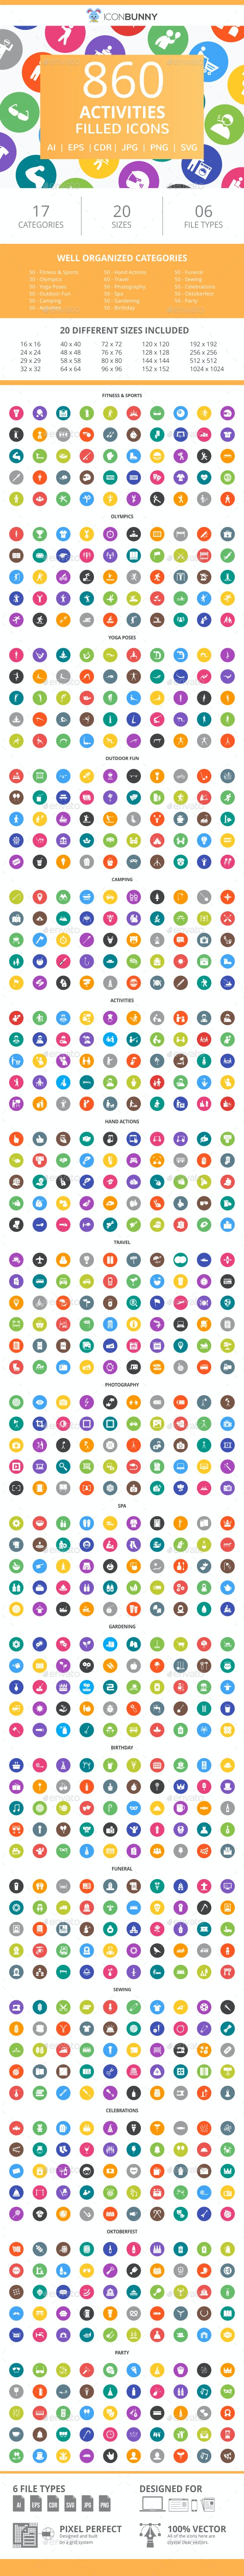 860 Activities Filled Round  Icons - Icons